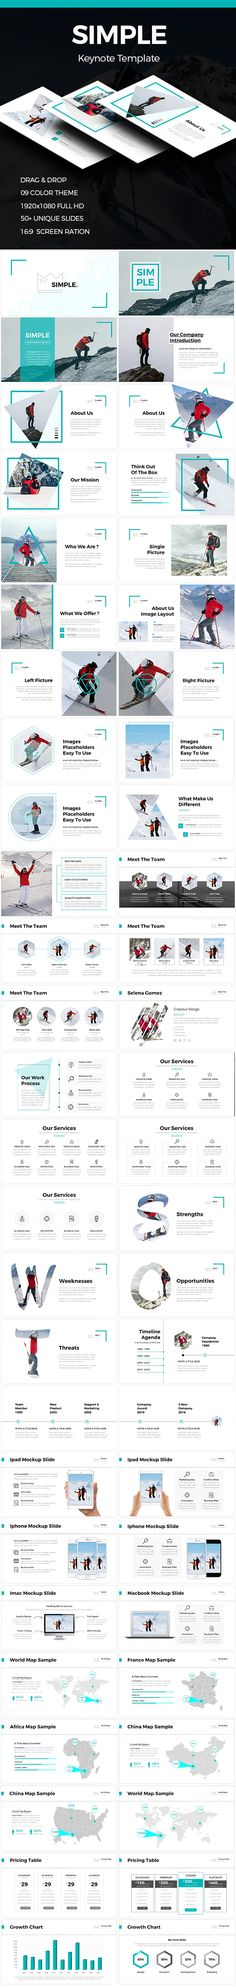 Simple  Clean Keynote Template — Keynote KEY #ecommerce #pitch deck powerpoint • Download ➝ https://graphicriver.net/item/simple-clean-keynote-template/19191168?ref=pxcr